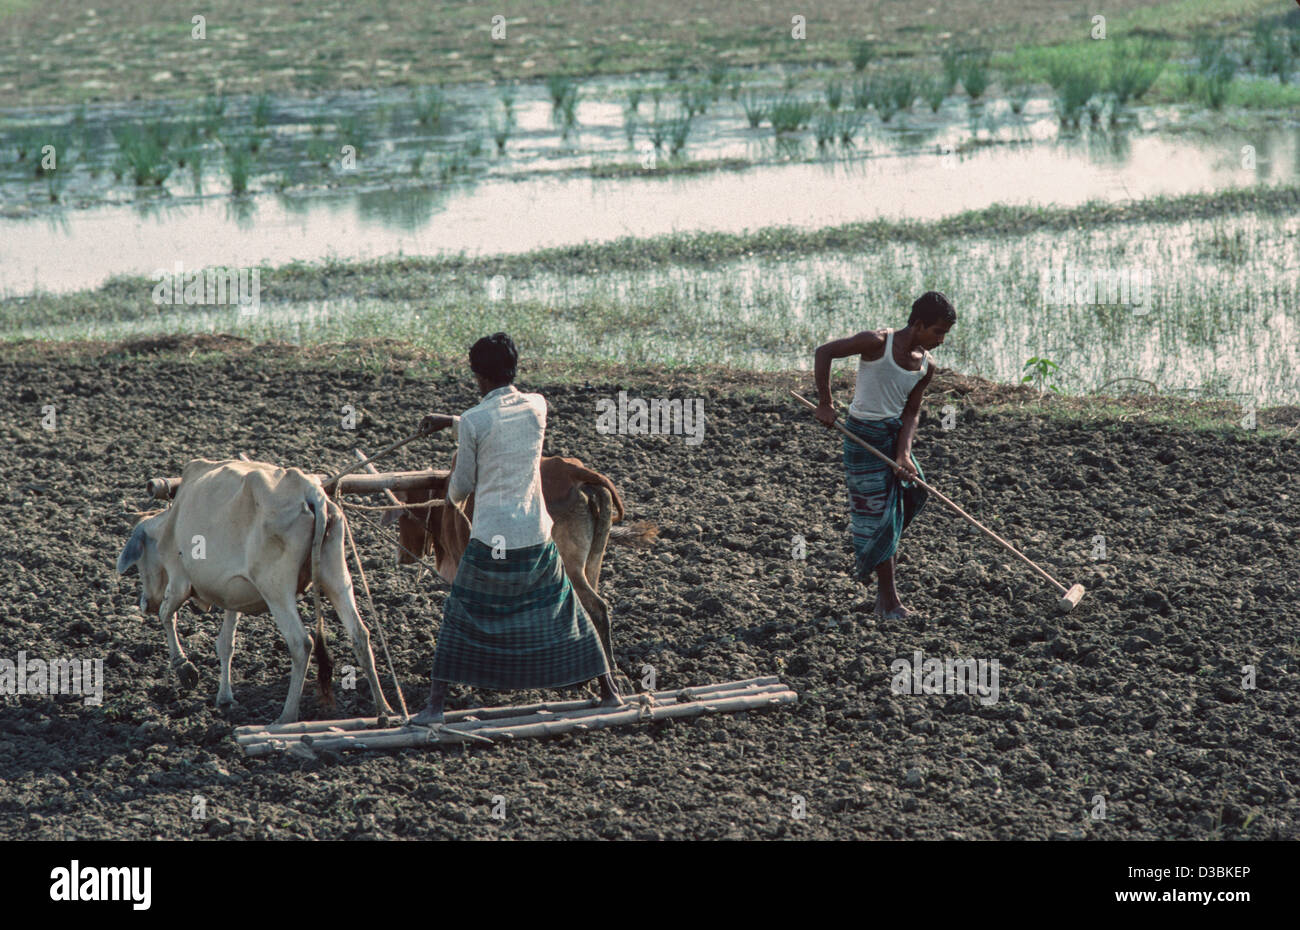 Breaking up soil with a board harrow pulled by oxen. Another farm worker is breaking up the soil by hand. Tangail, - Stock Image